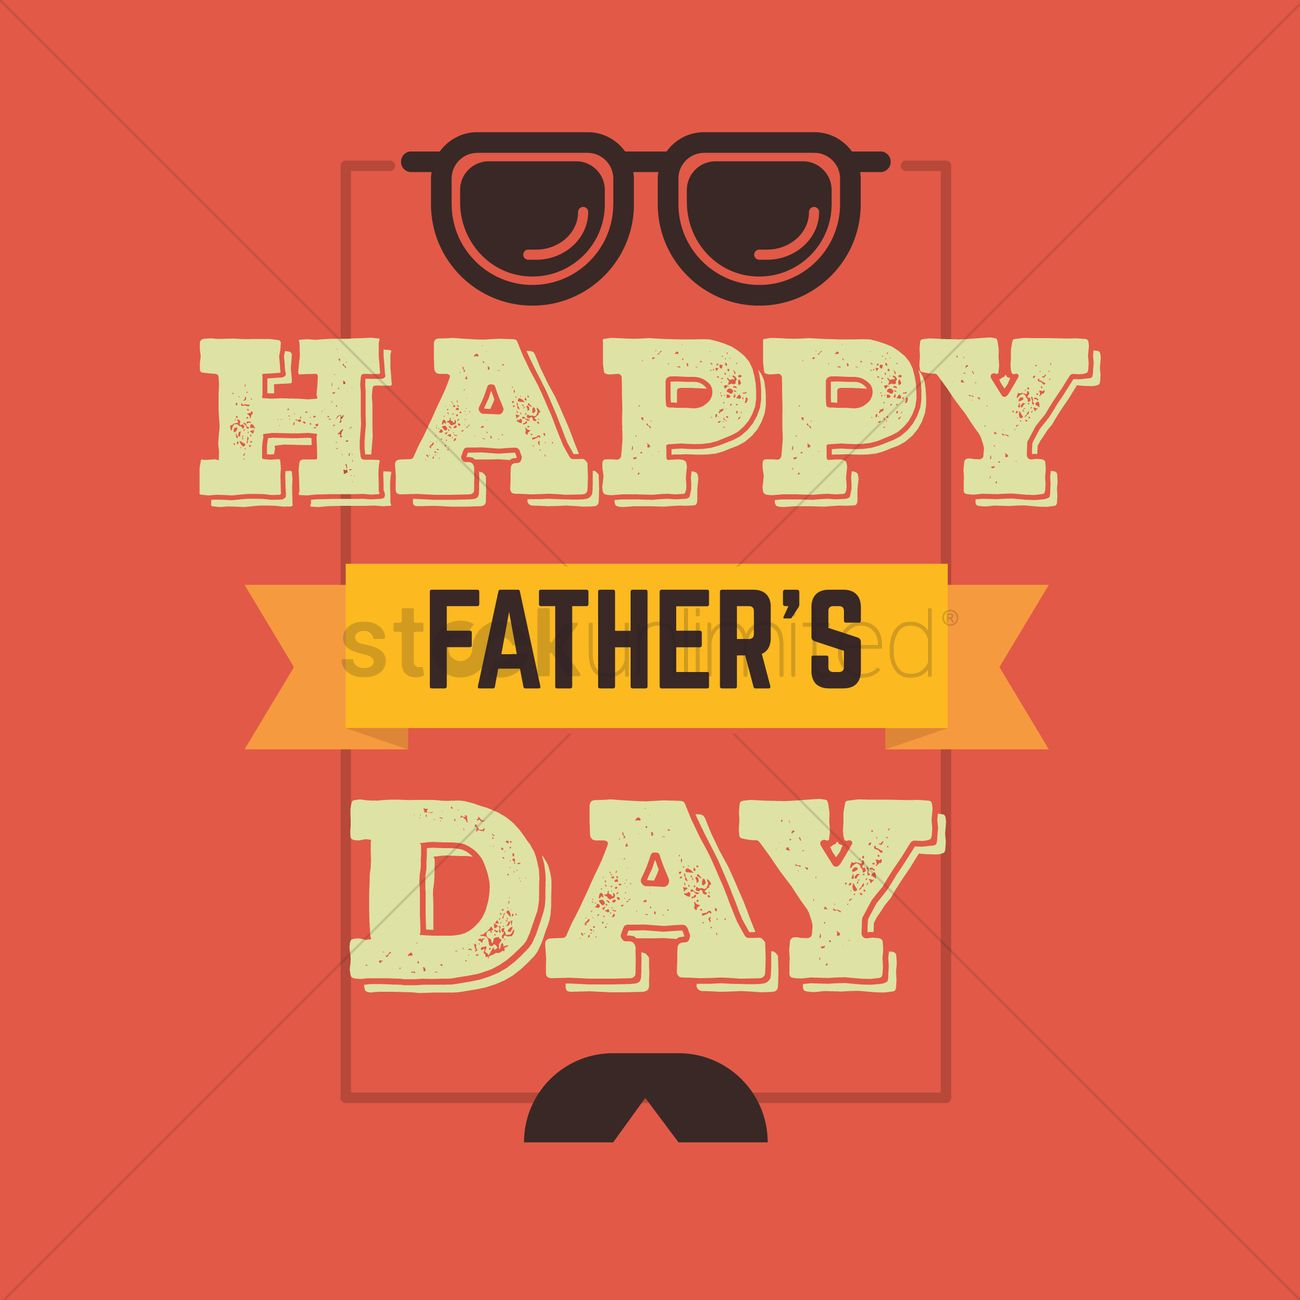 Fathers day greeting card vector image 1540254 stockunlimited fathers day greeting card vector graphic m4hsunfo